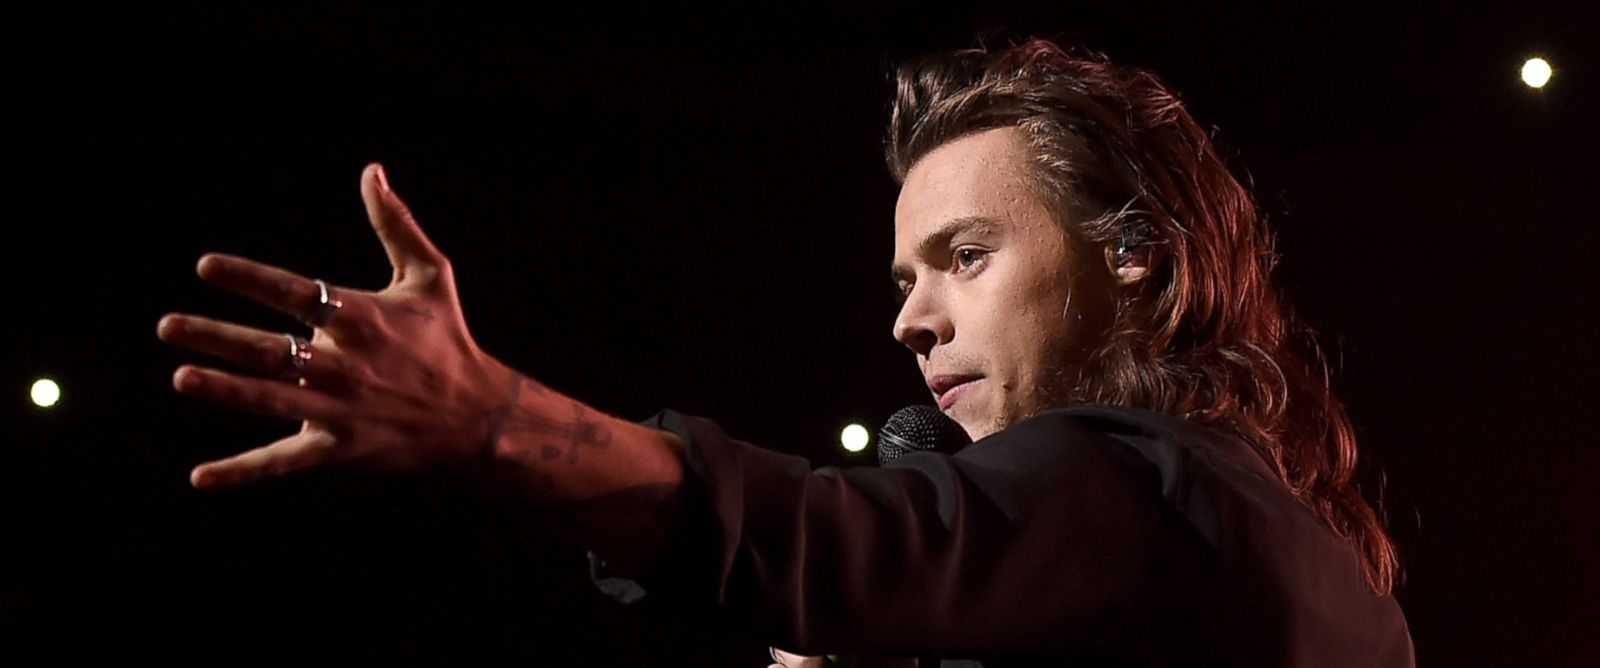 PHOTO: Singer Harry Styles of musical group One Direction performs onstage during 106.1 KISS FM's Jingle Ball 2015 presented by Capital One at American Airlines Center, Dec. 1, 2015, in Dallas, Texas.